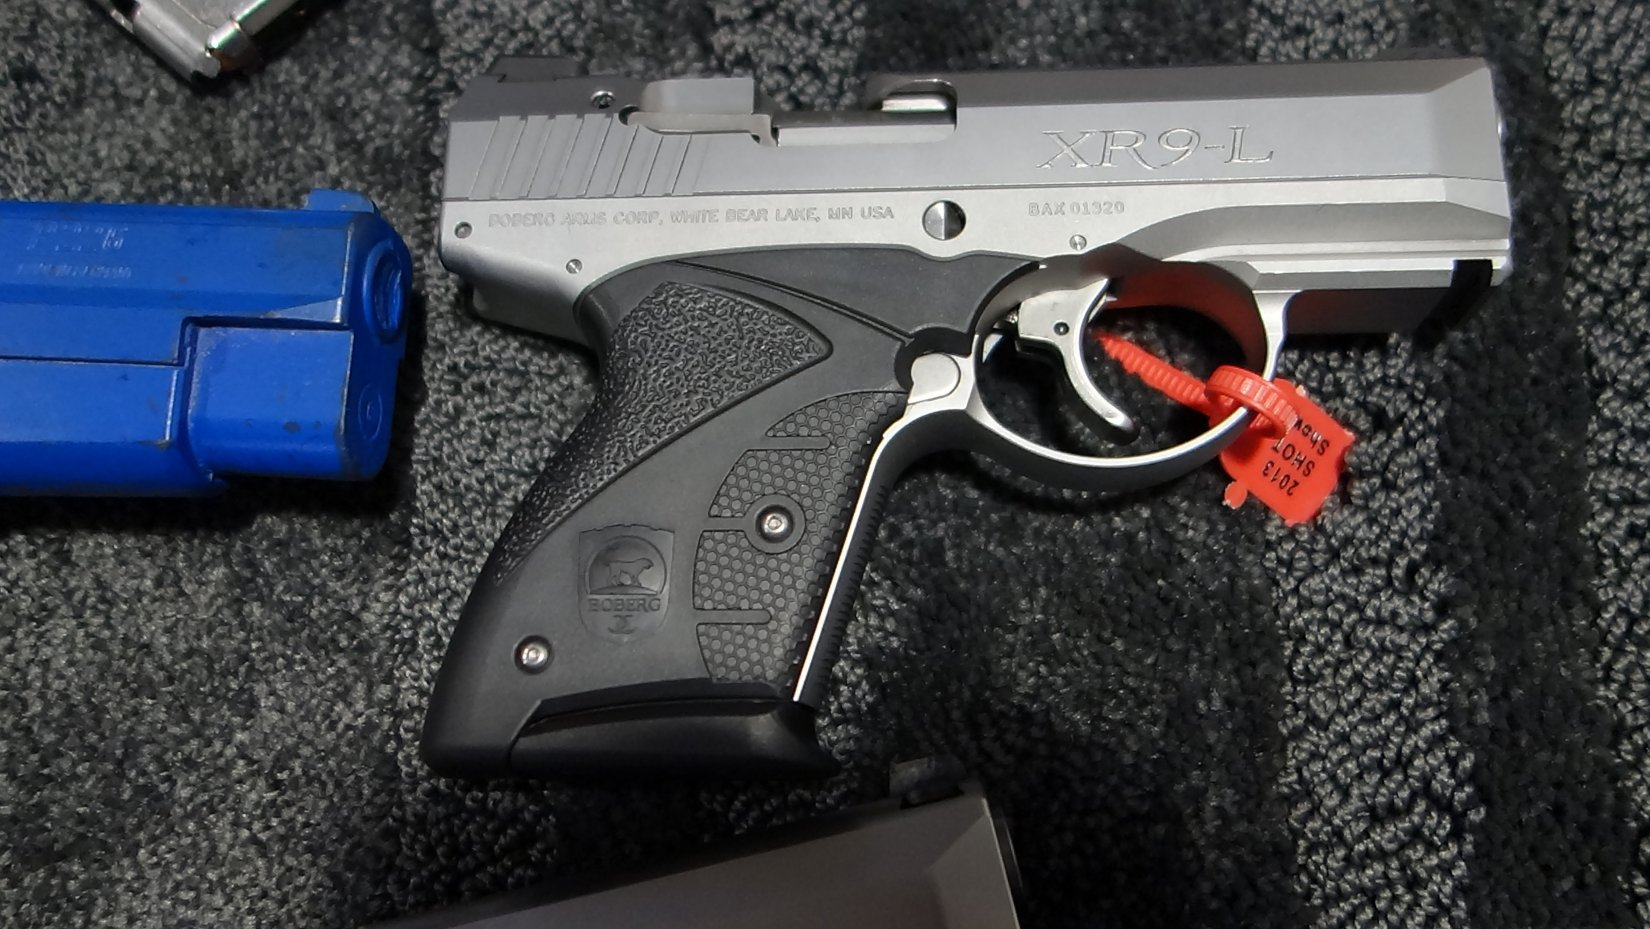 Boberg Arms XR9 L Long Stroke 9mm Sub Compact Semi Auto Pistol with Rotating Barrel SHOT Show 2013 David Crane DefenseReview.com DR 6 Boberg Arms XR9 L Long Stroke, Rotating Barrel Sub Compact Semi Auto 9mm Pistol for Concealed Carry (CCW): Big Gun Ballistic Performance in a Small Package! (Video!)